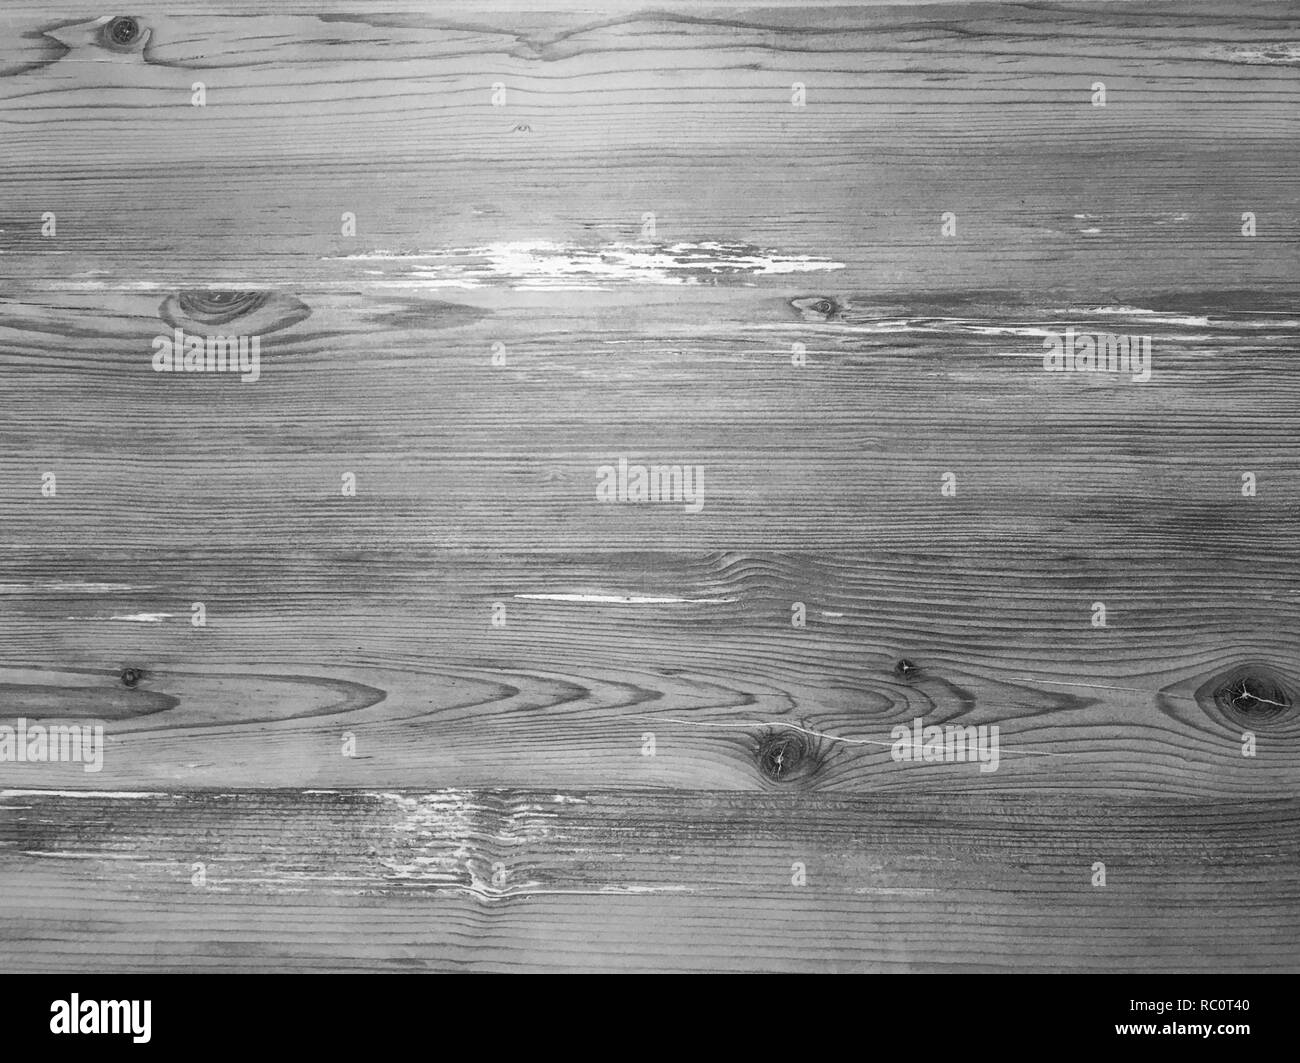 brown wooden texture background, dark oak of weathered distressed washed wood with faded varnish paint showing woodgrain texture. wash hardwood planks - Stock Image